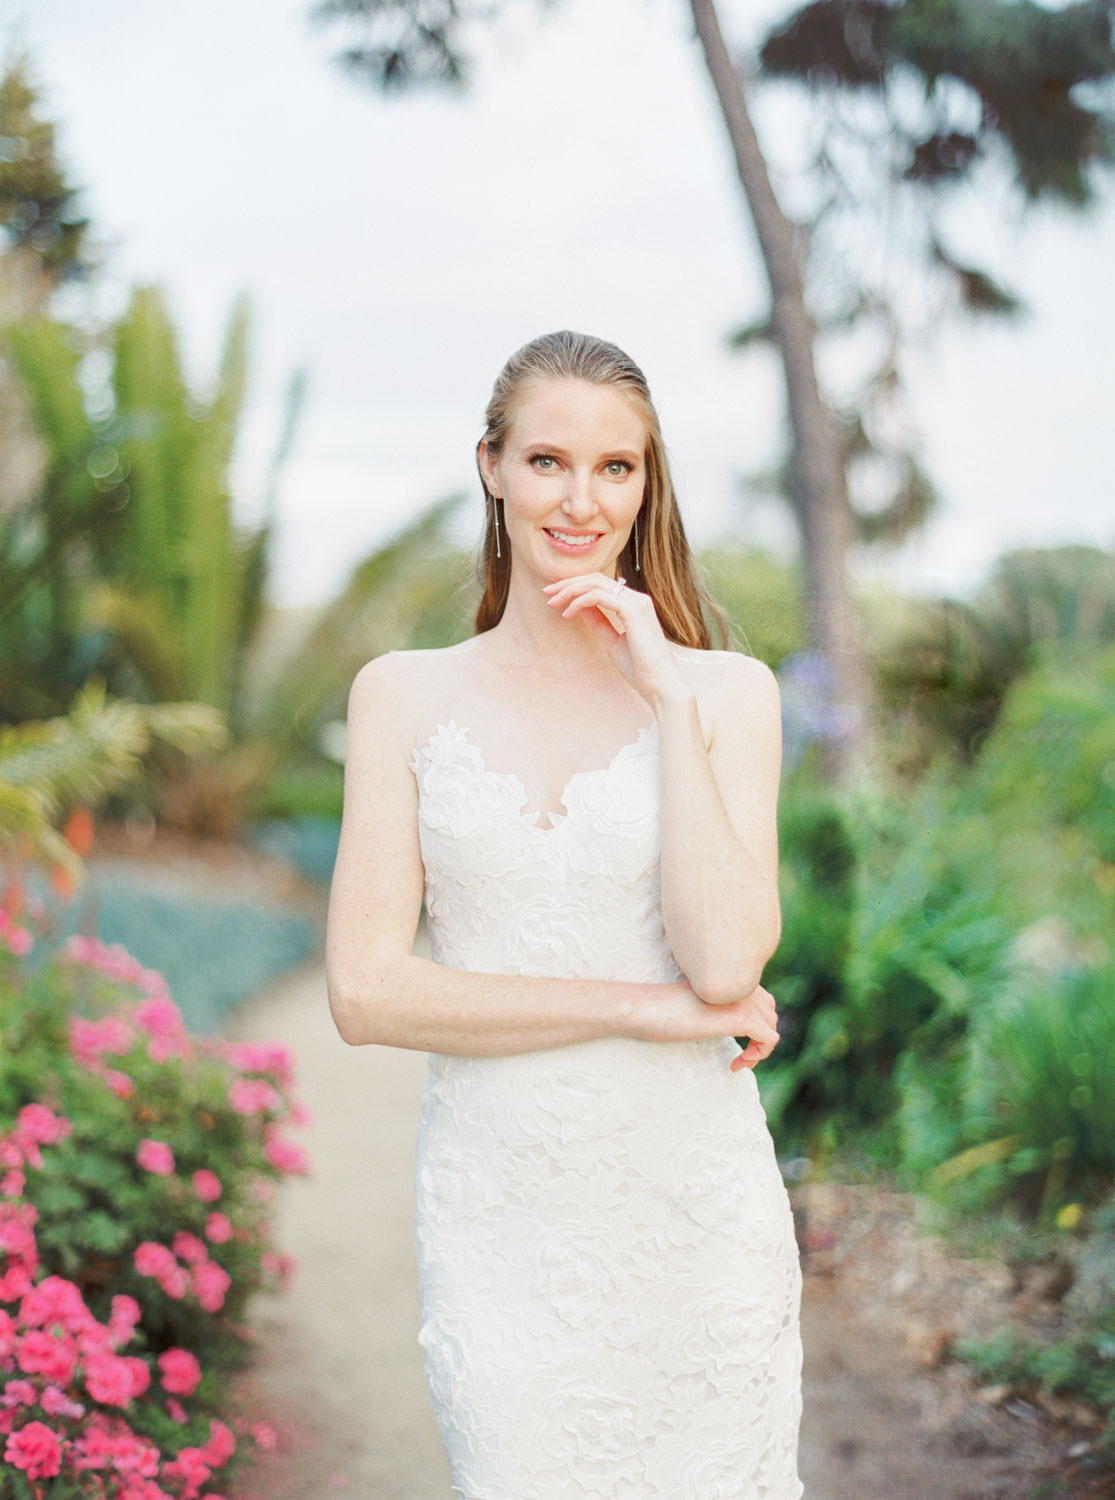 Bridal portrait on medium format film at San Diego Botanical Garden, Cavin Elizabeth Photography